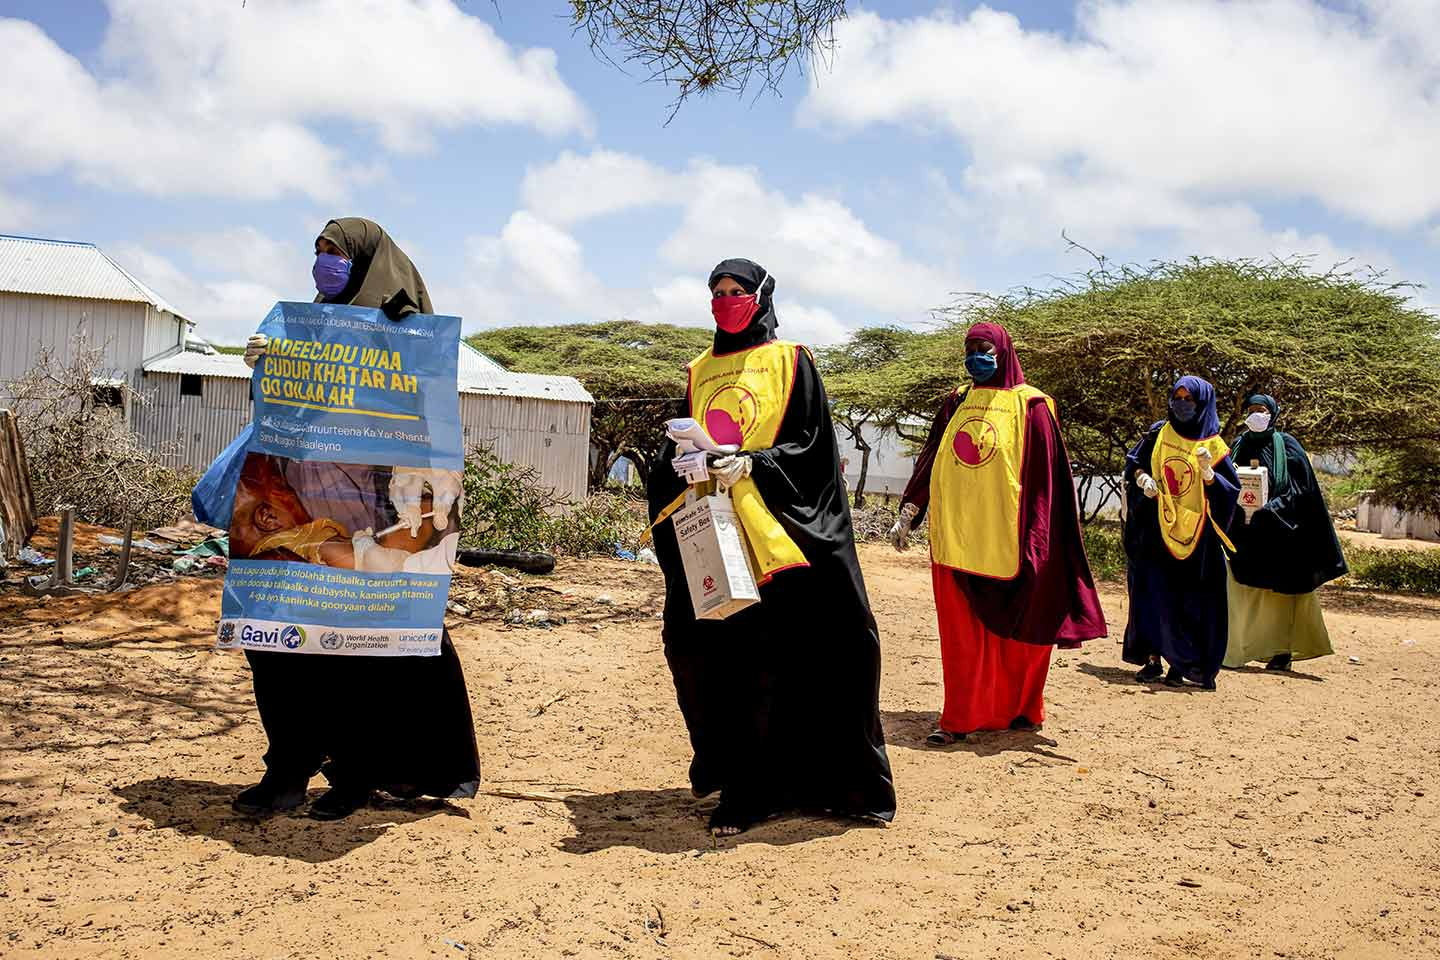 Health workers walk to at Kahda district as they wait for children to vaccinations as part of national polio and measles vaccination campaign in Mogadishu, Somalia on Tuesday 01 September 2020. Photo Ismail Taxta / Ildoog/WHO SOMALIA